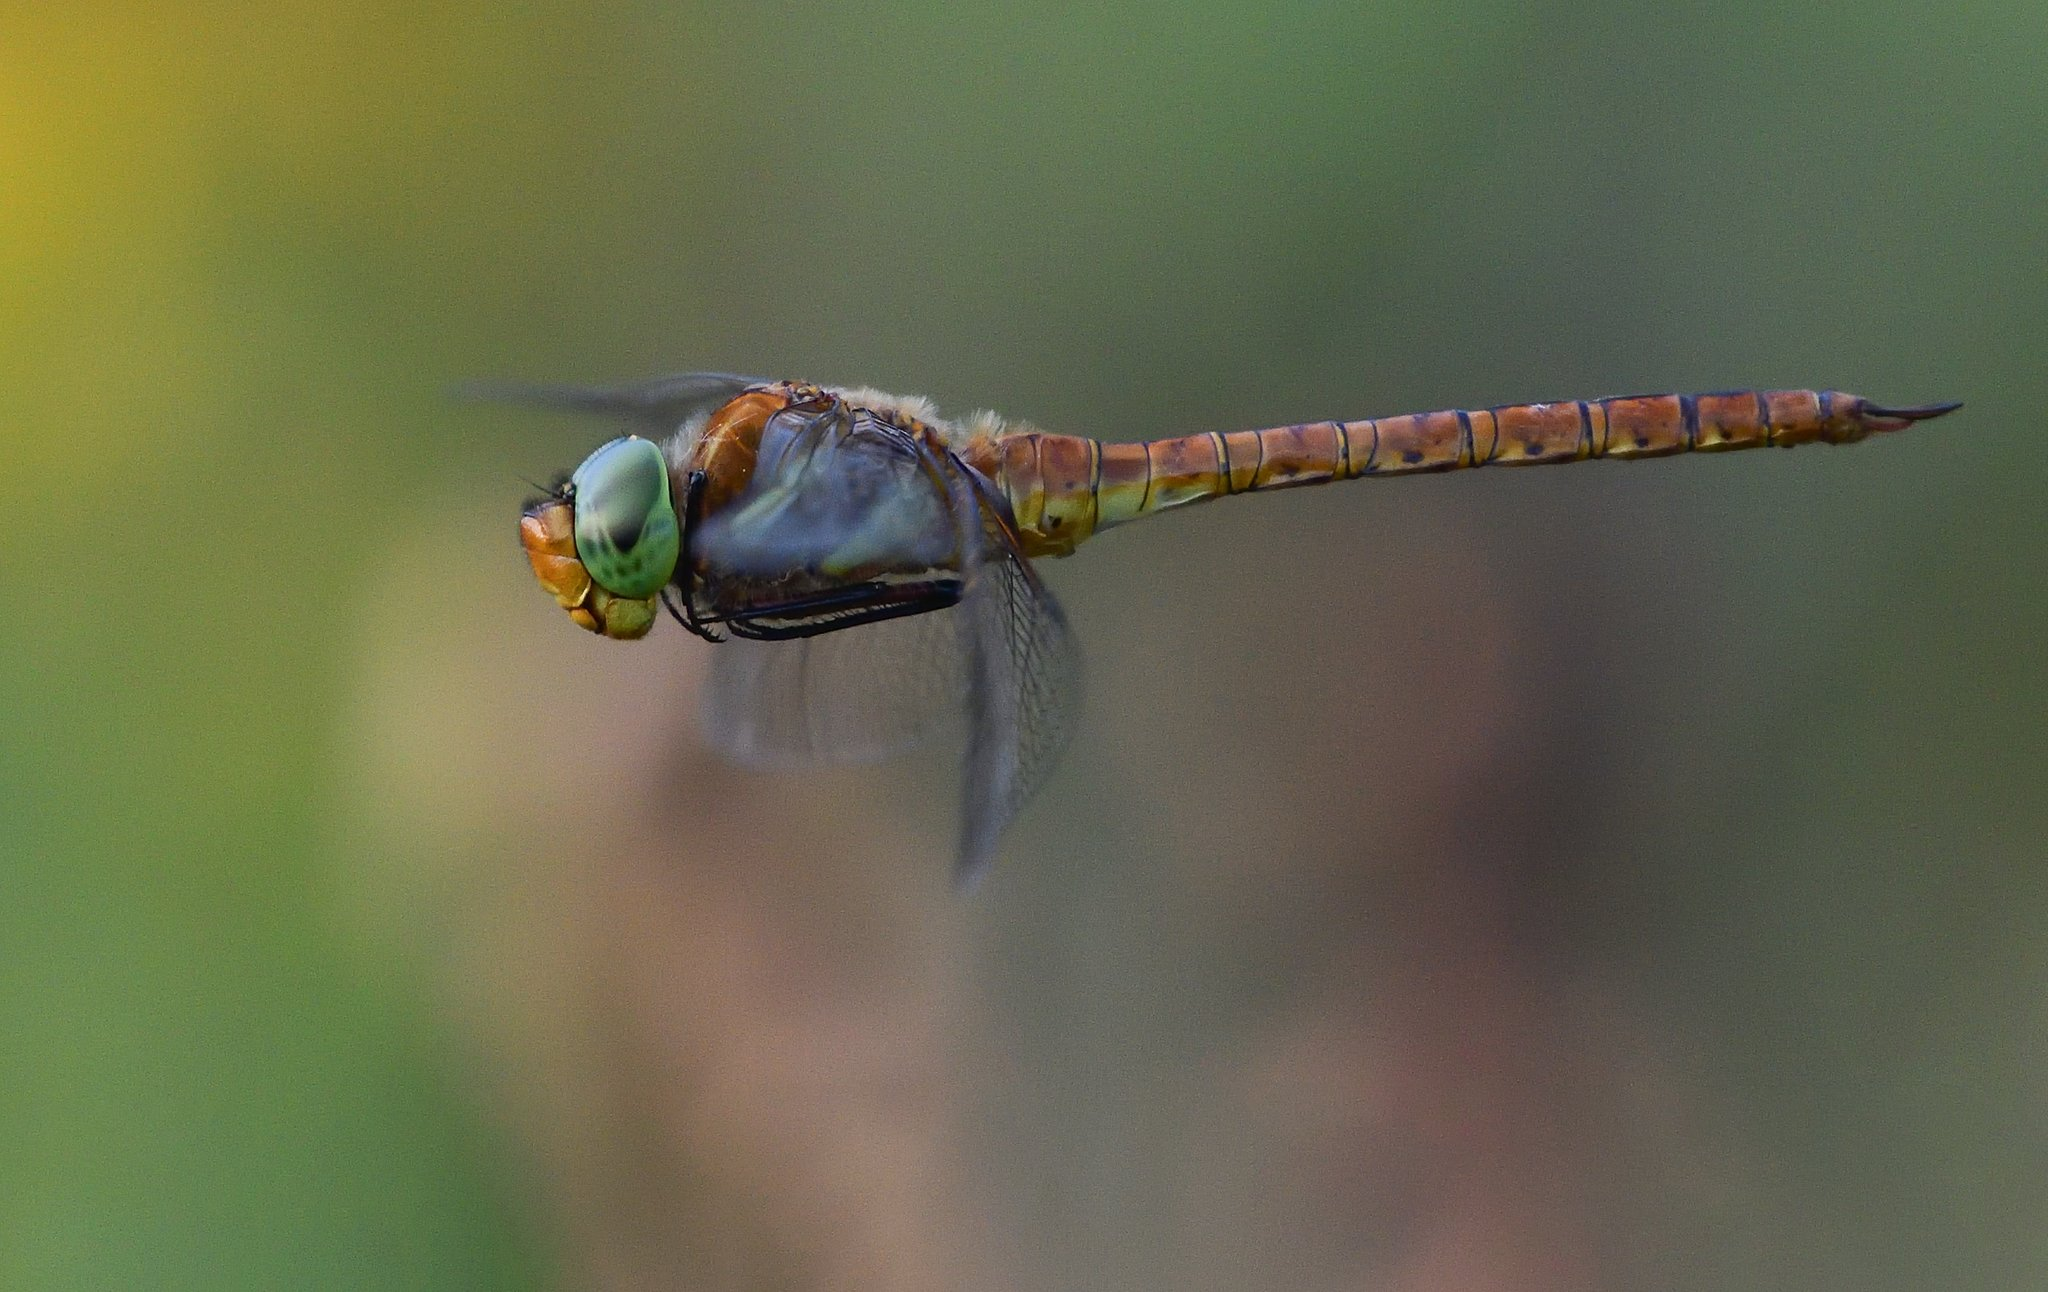 fly, insect, dragonfly, green, air, light, Димитър Русев